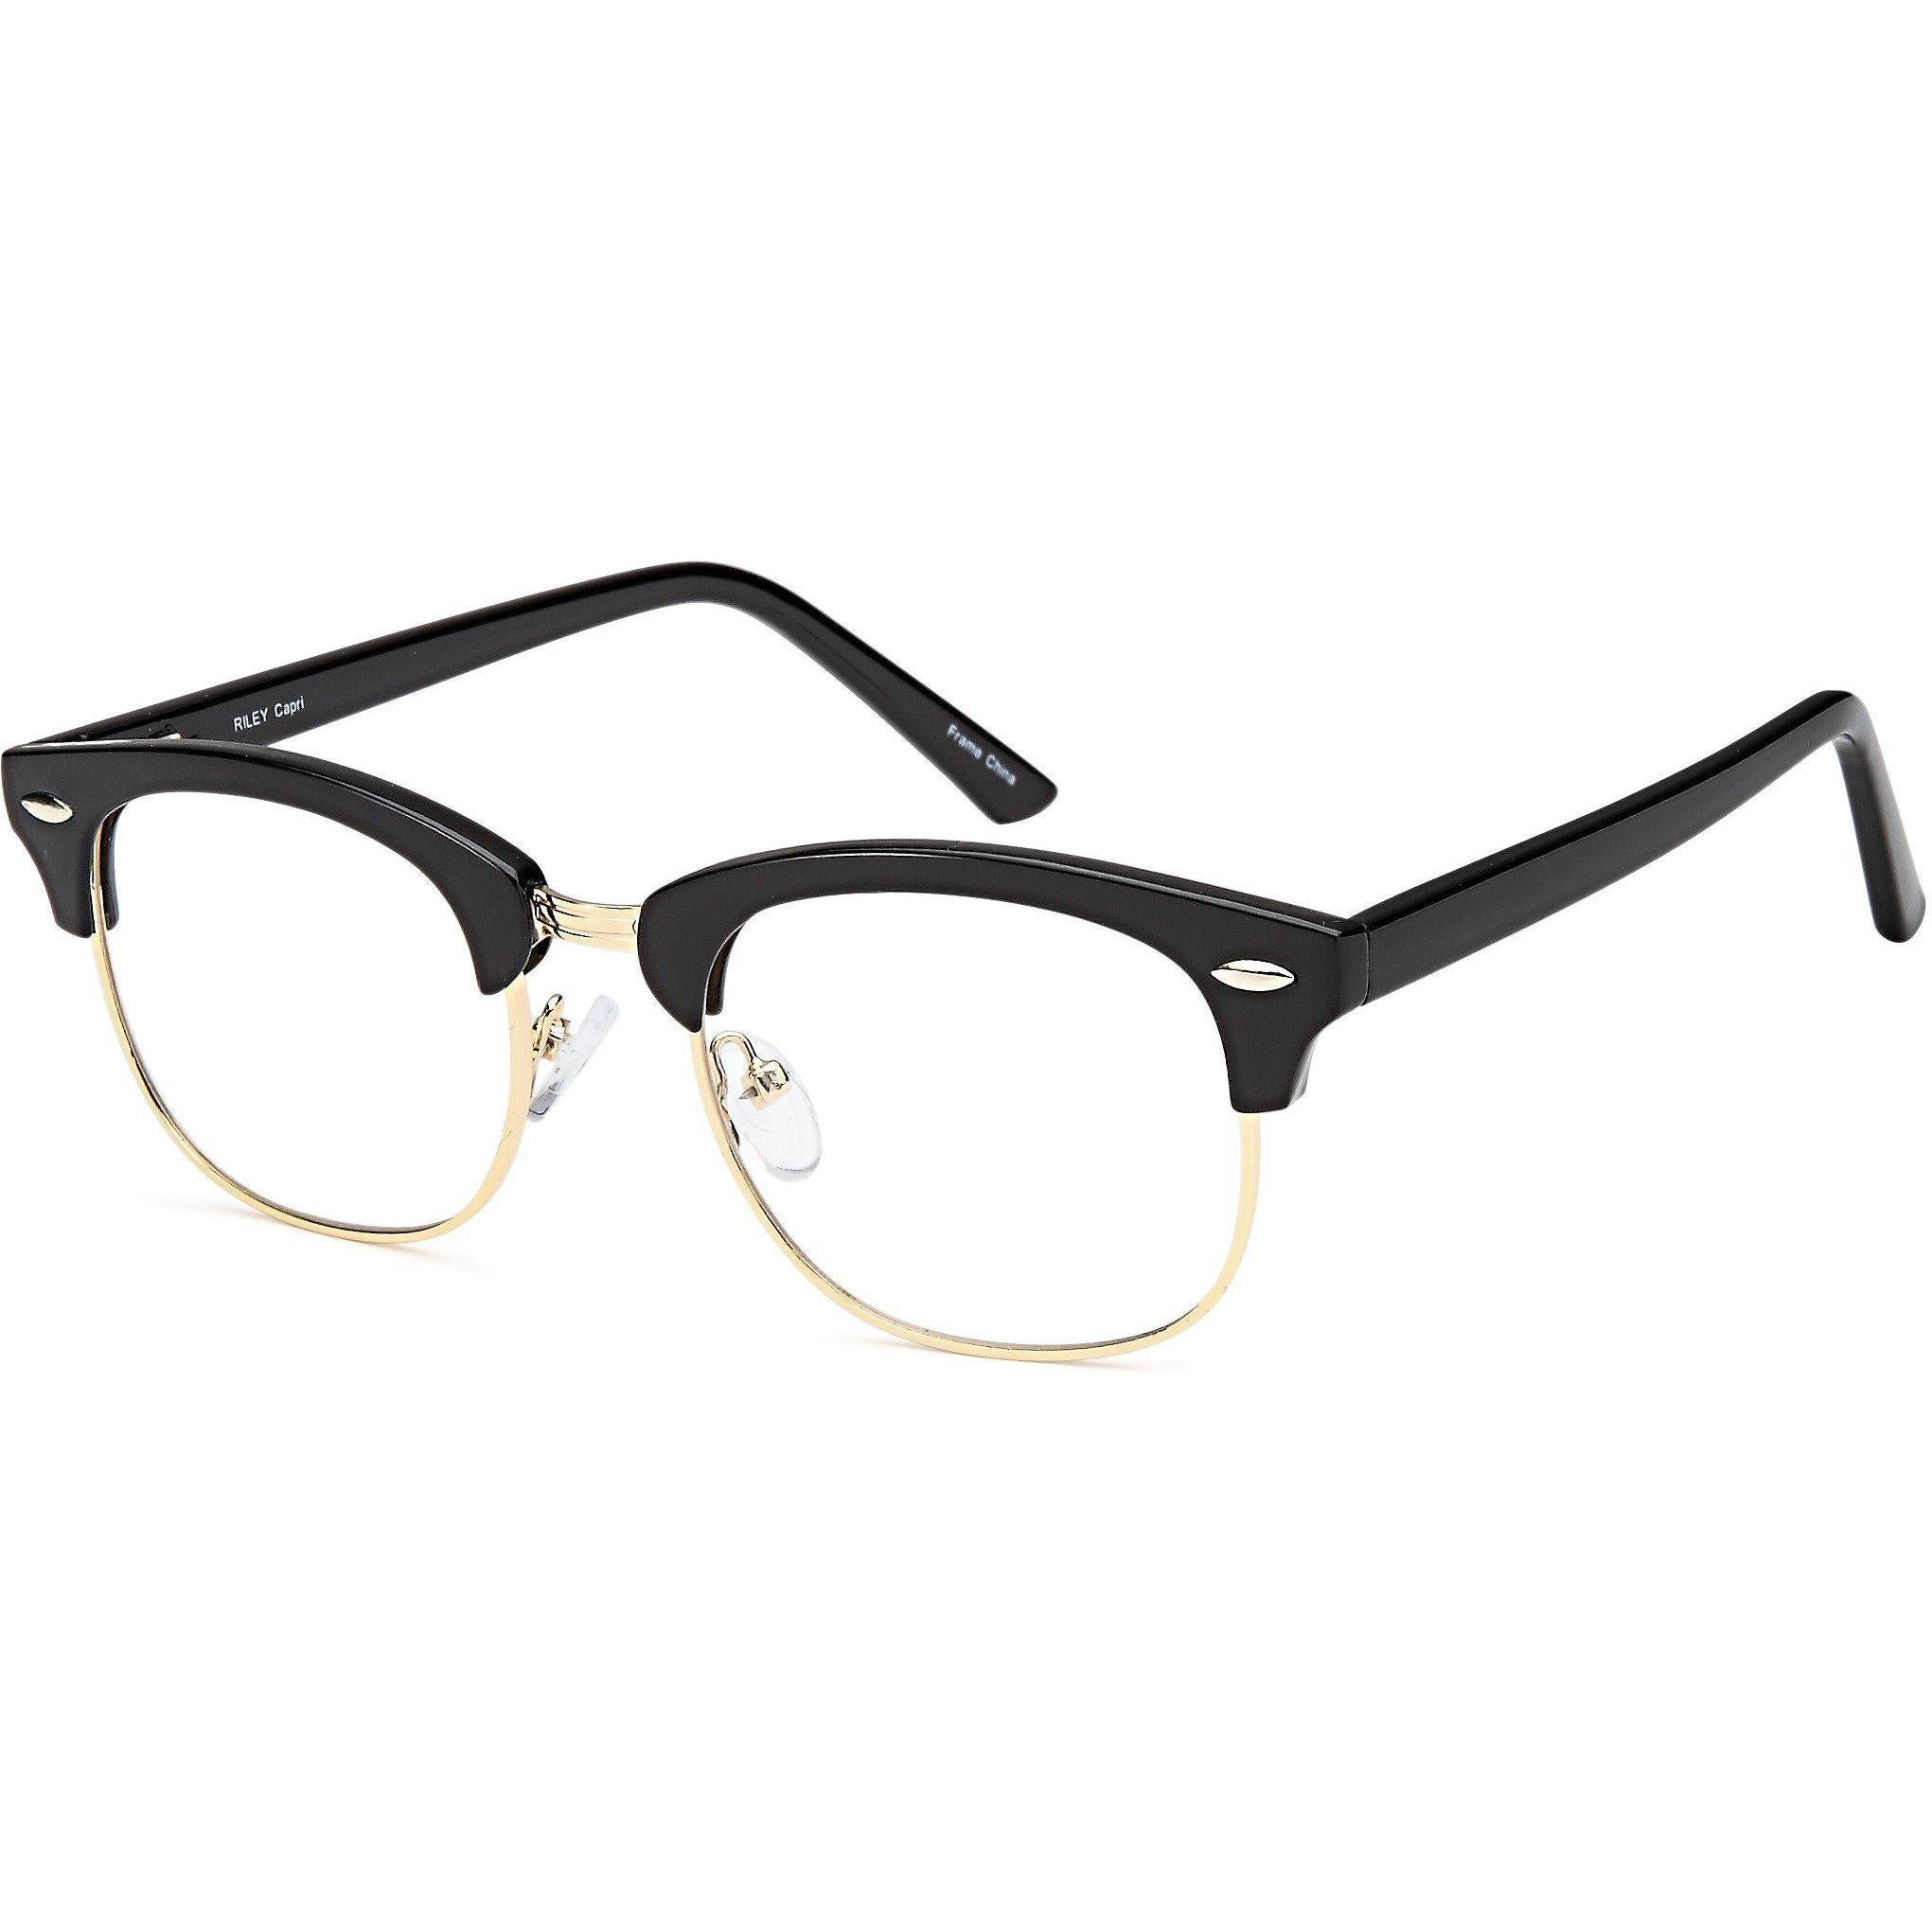 The Icons Prescription Glasses RILEY Eyeglasses Frame